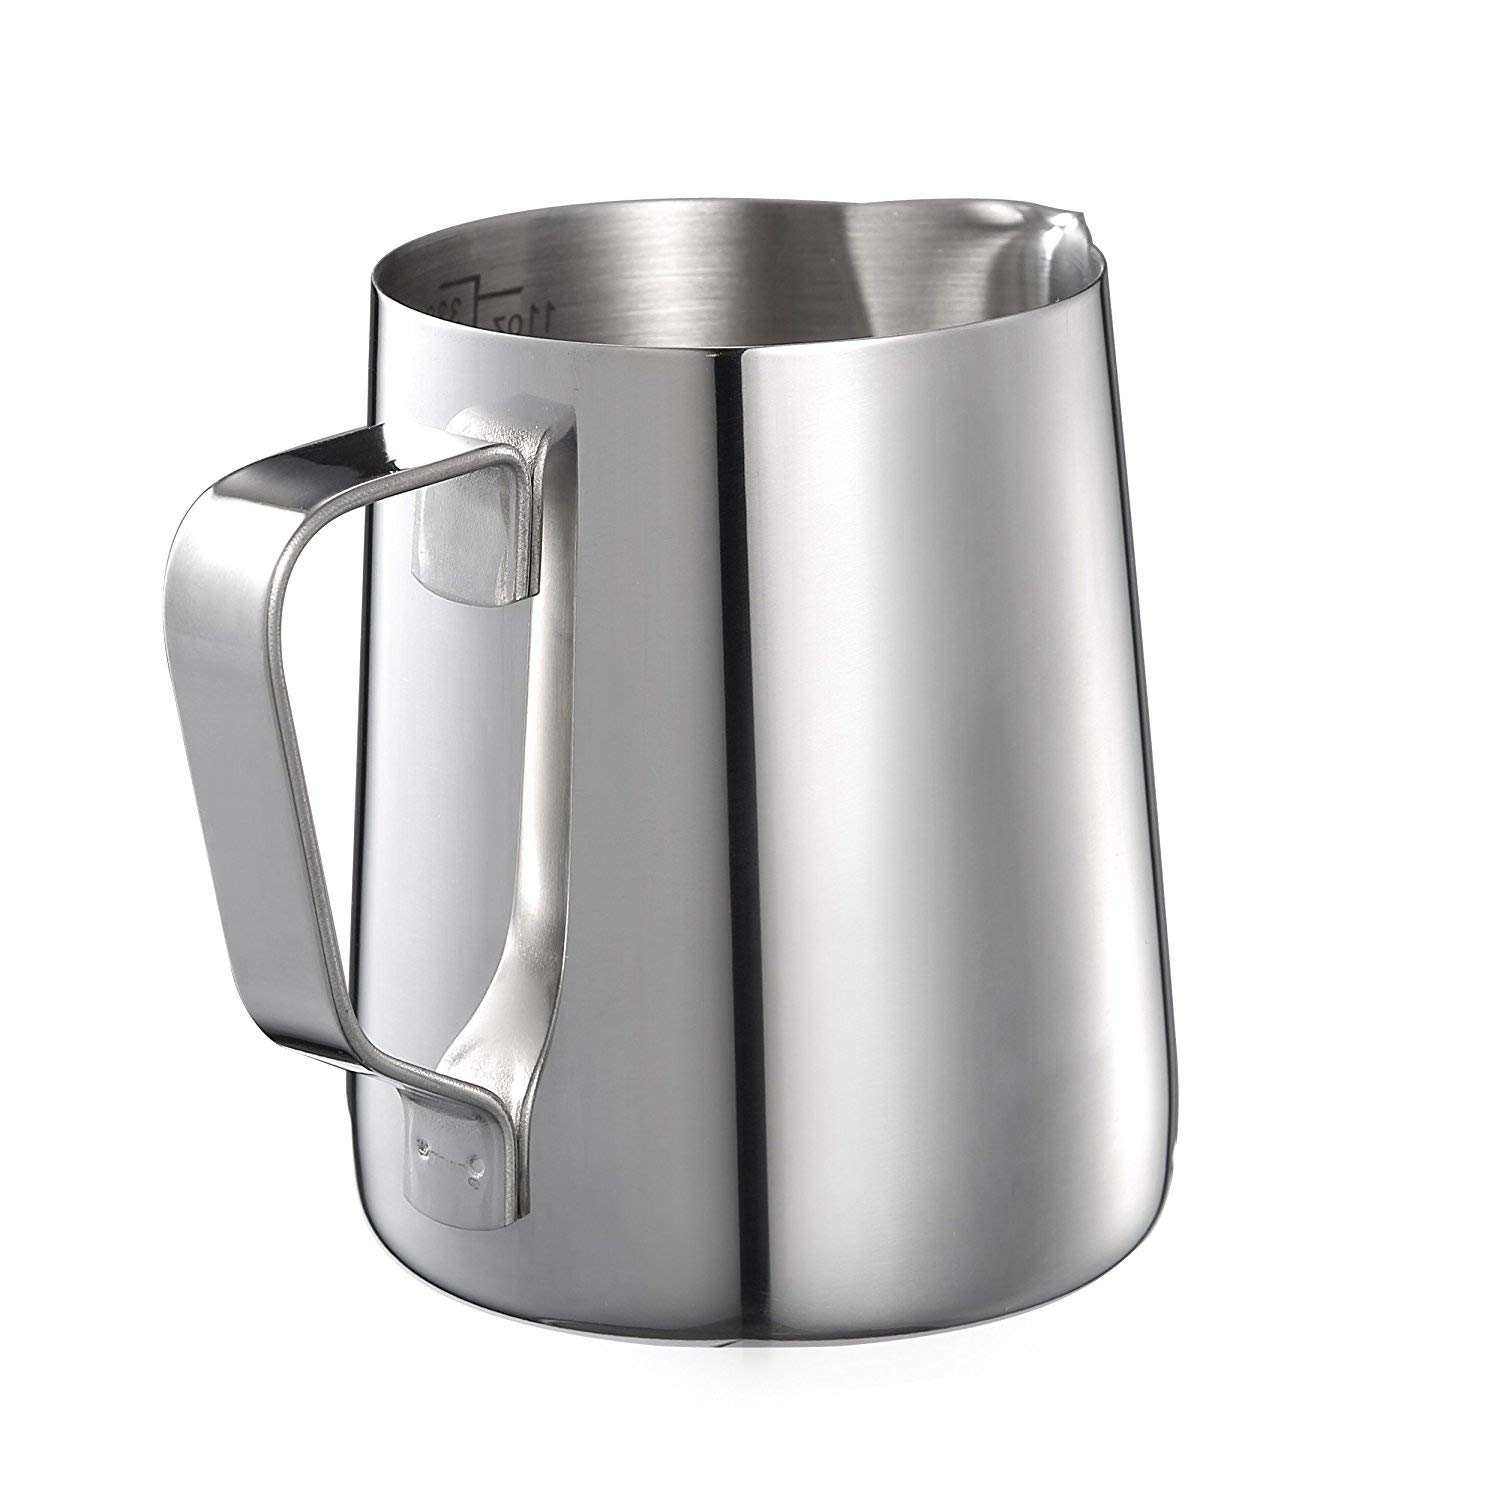 Kendan Stainless Steel 350ml Milk Frothing Pitcher Measuring Jug Cup